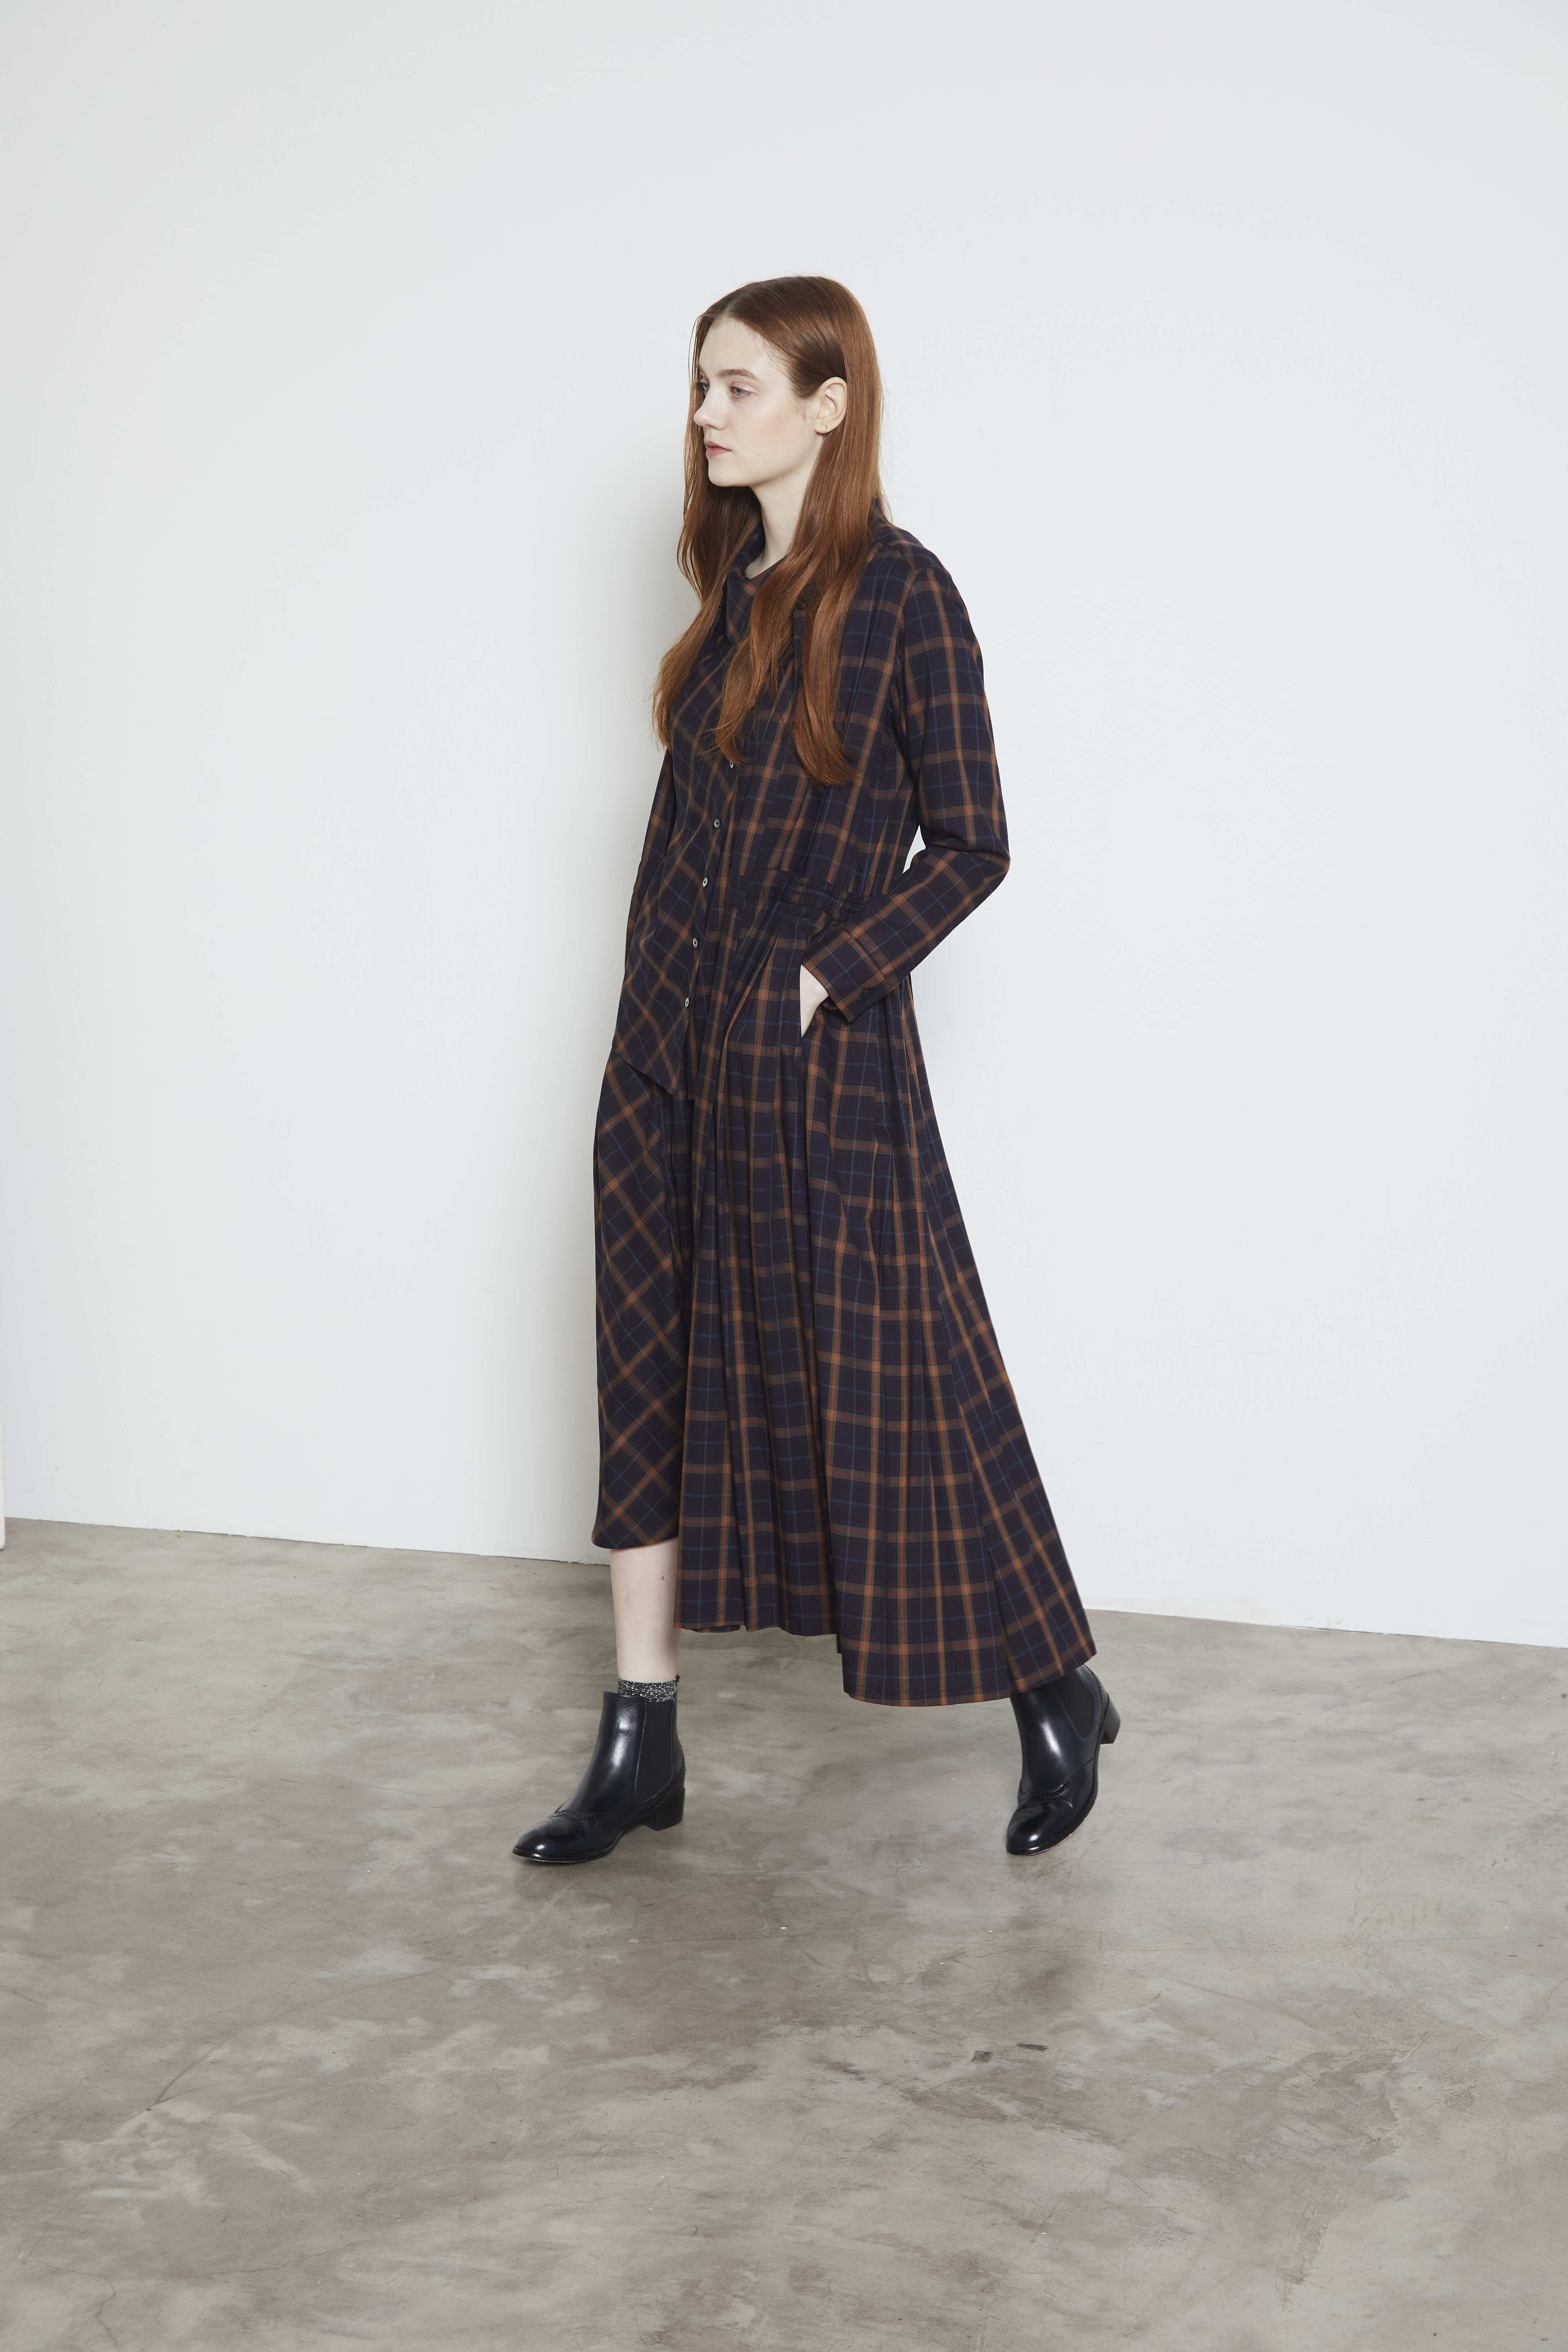 【2021AW先行受注アイテム】TARTAN CHECK FLAIR SKIRT